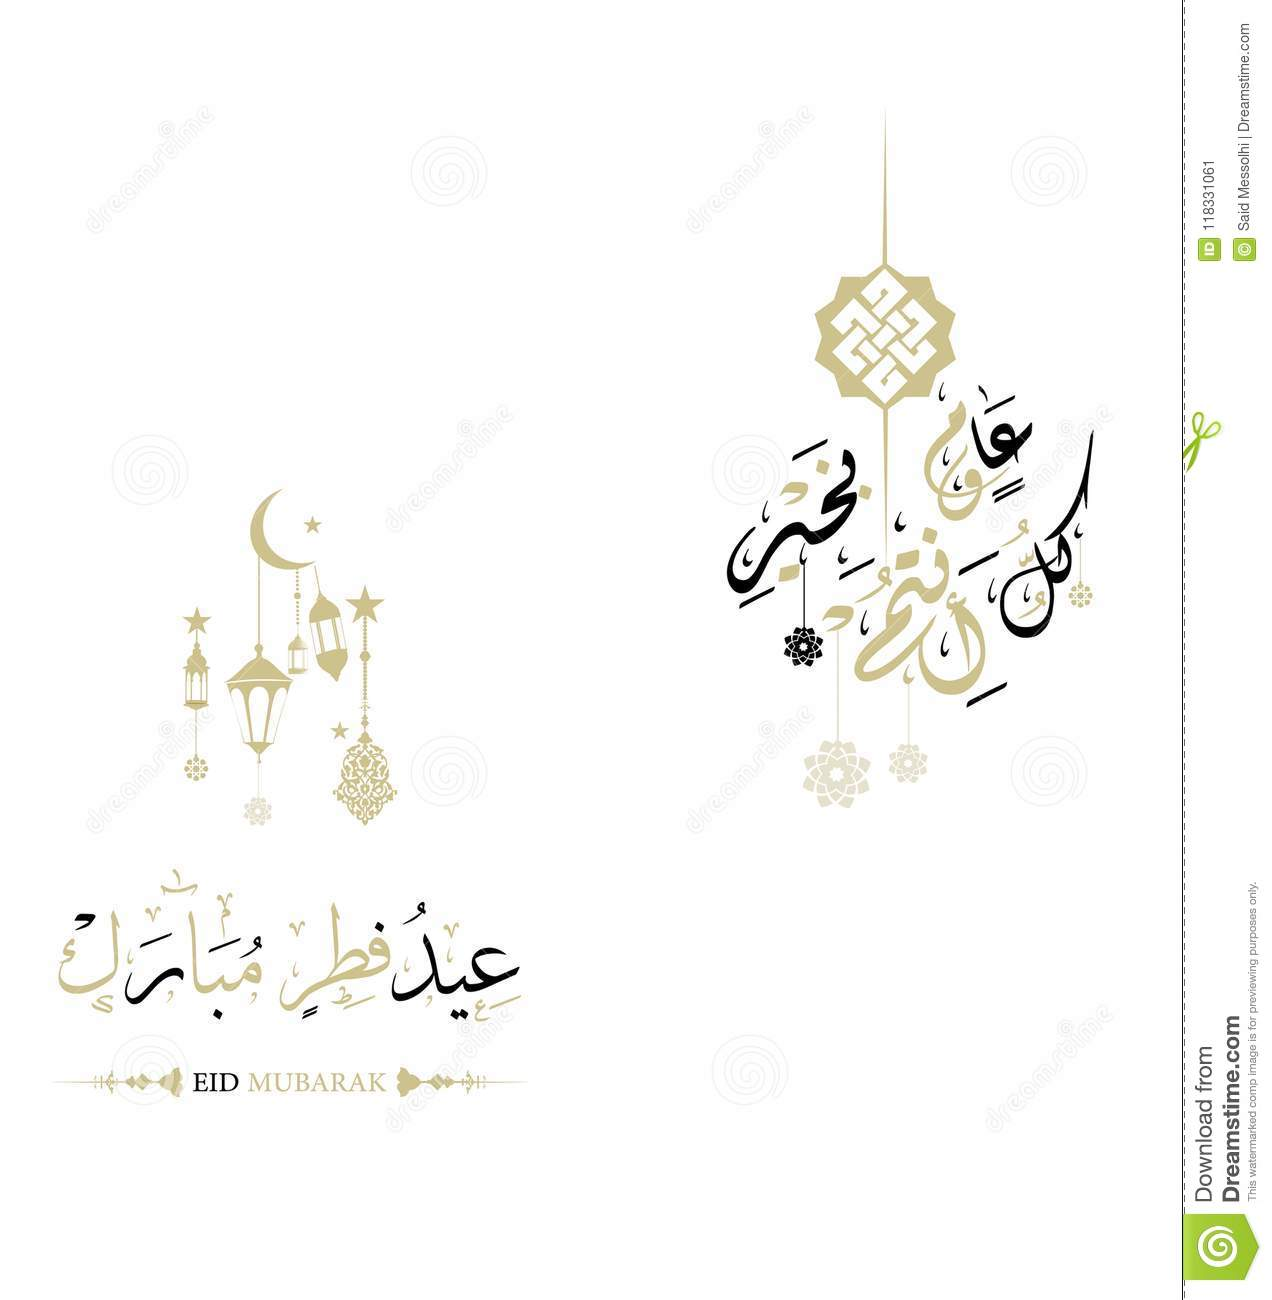 Islamic Greeting Card On The Occasion Of Eid Al Fitr For Muslims